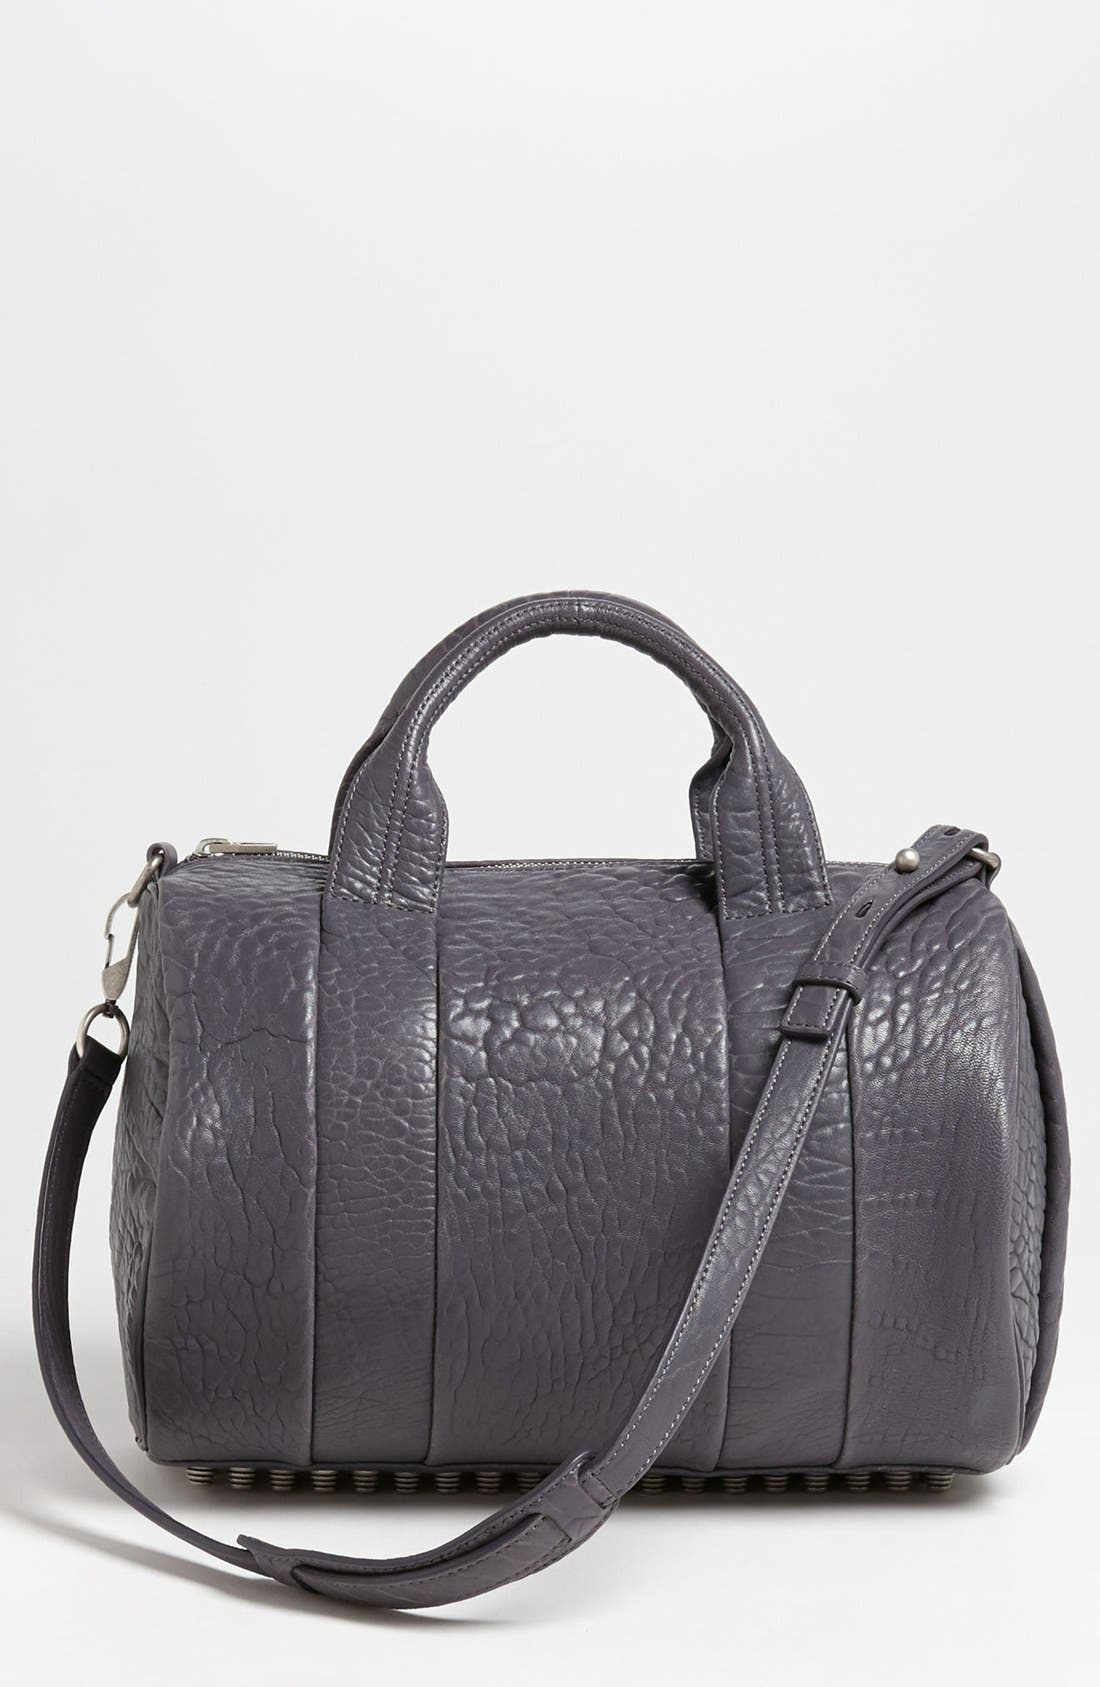 Main Image - Alexander Wang 'Rocco - Antique Silver' Leather Satchel